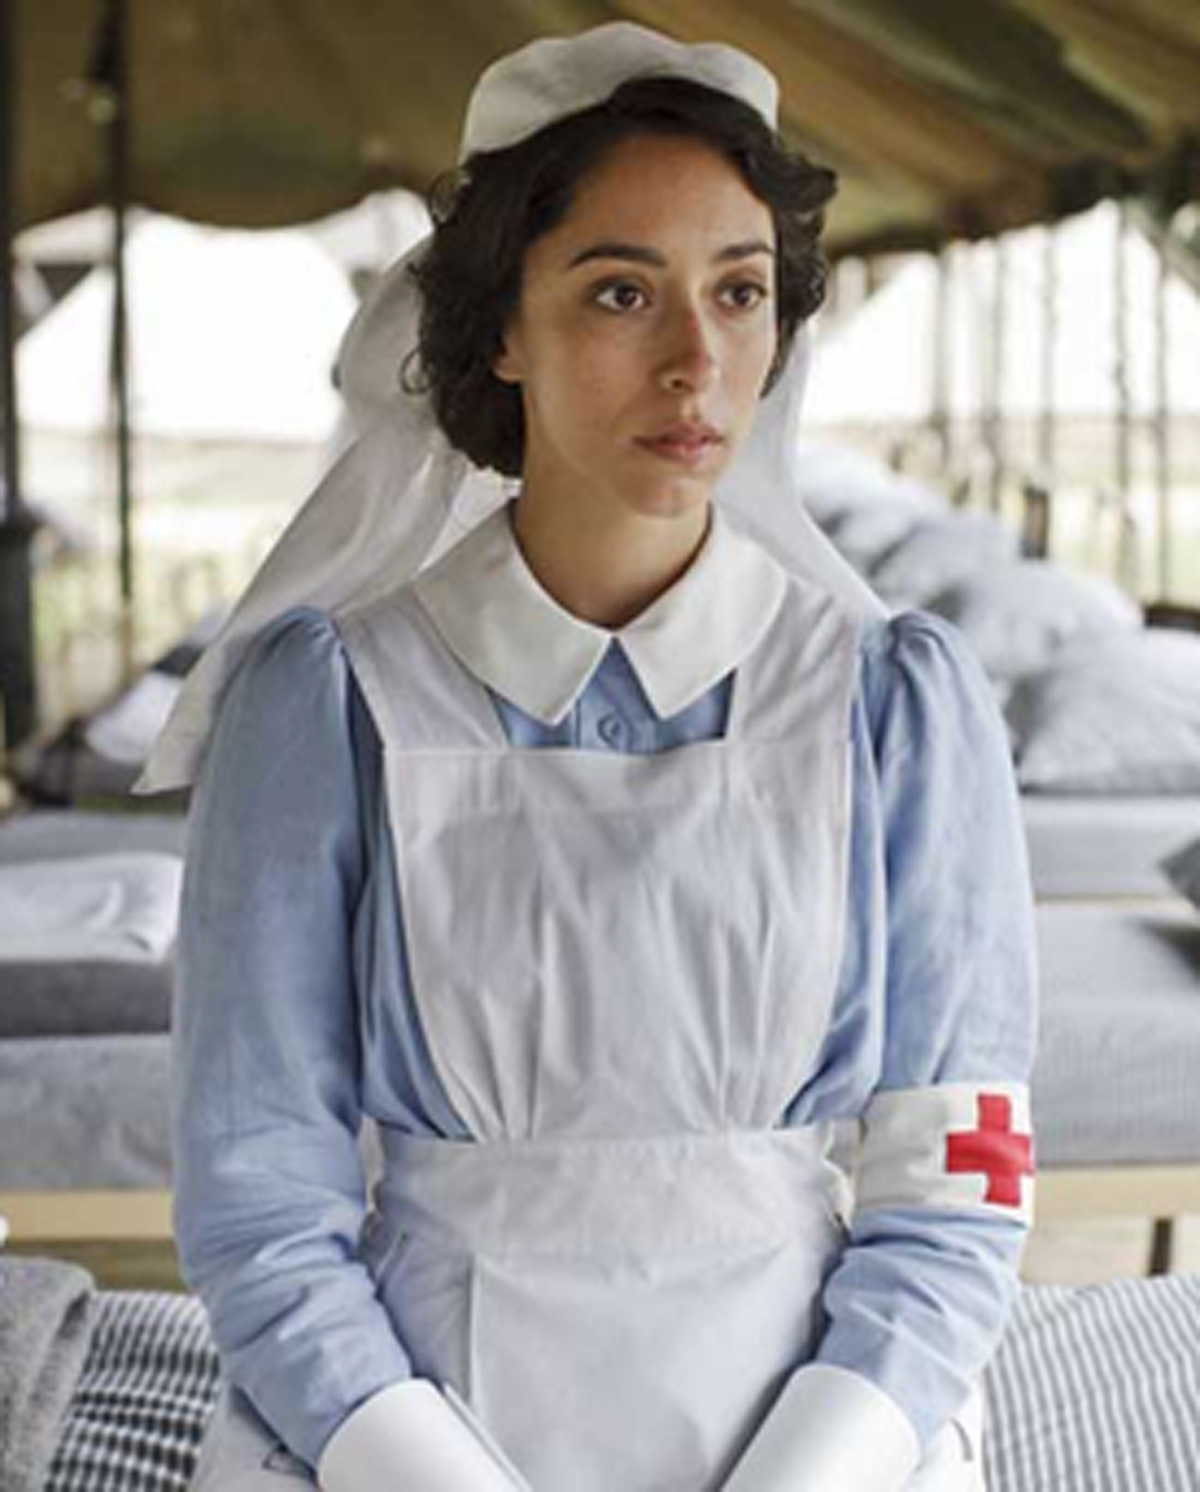 Malmesbury estate transformed into French hospital for BBC's WWI drama